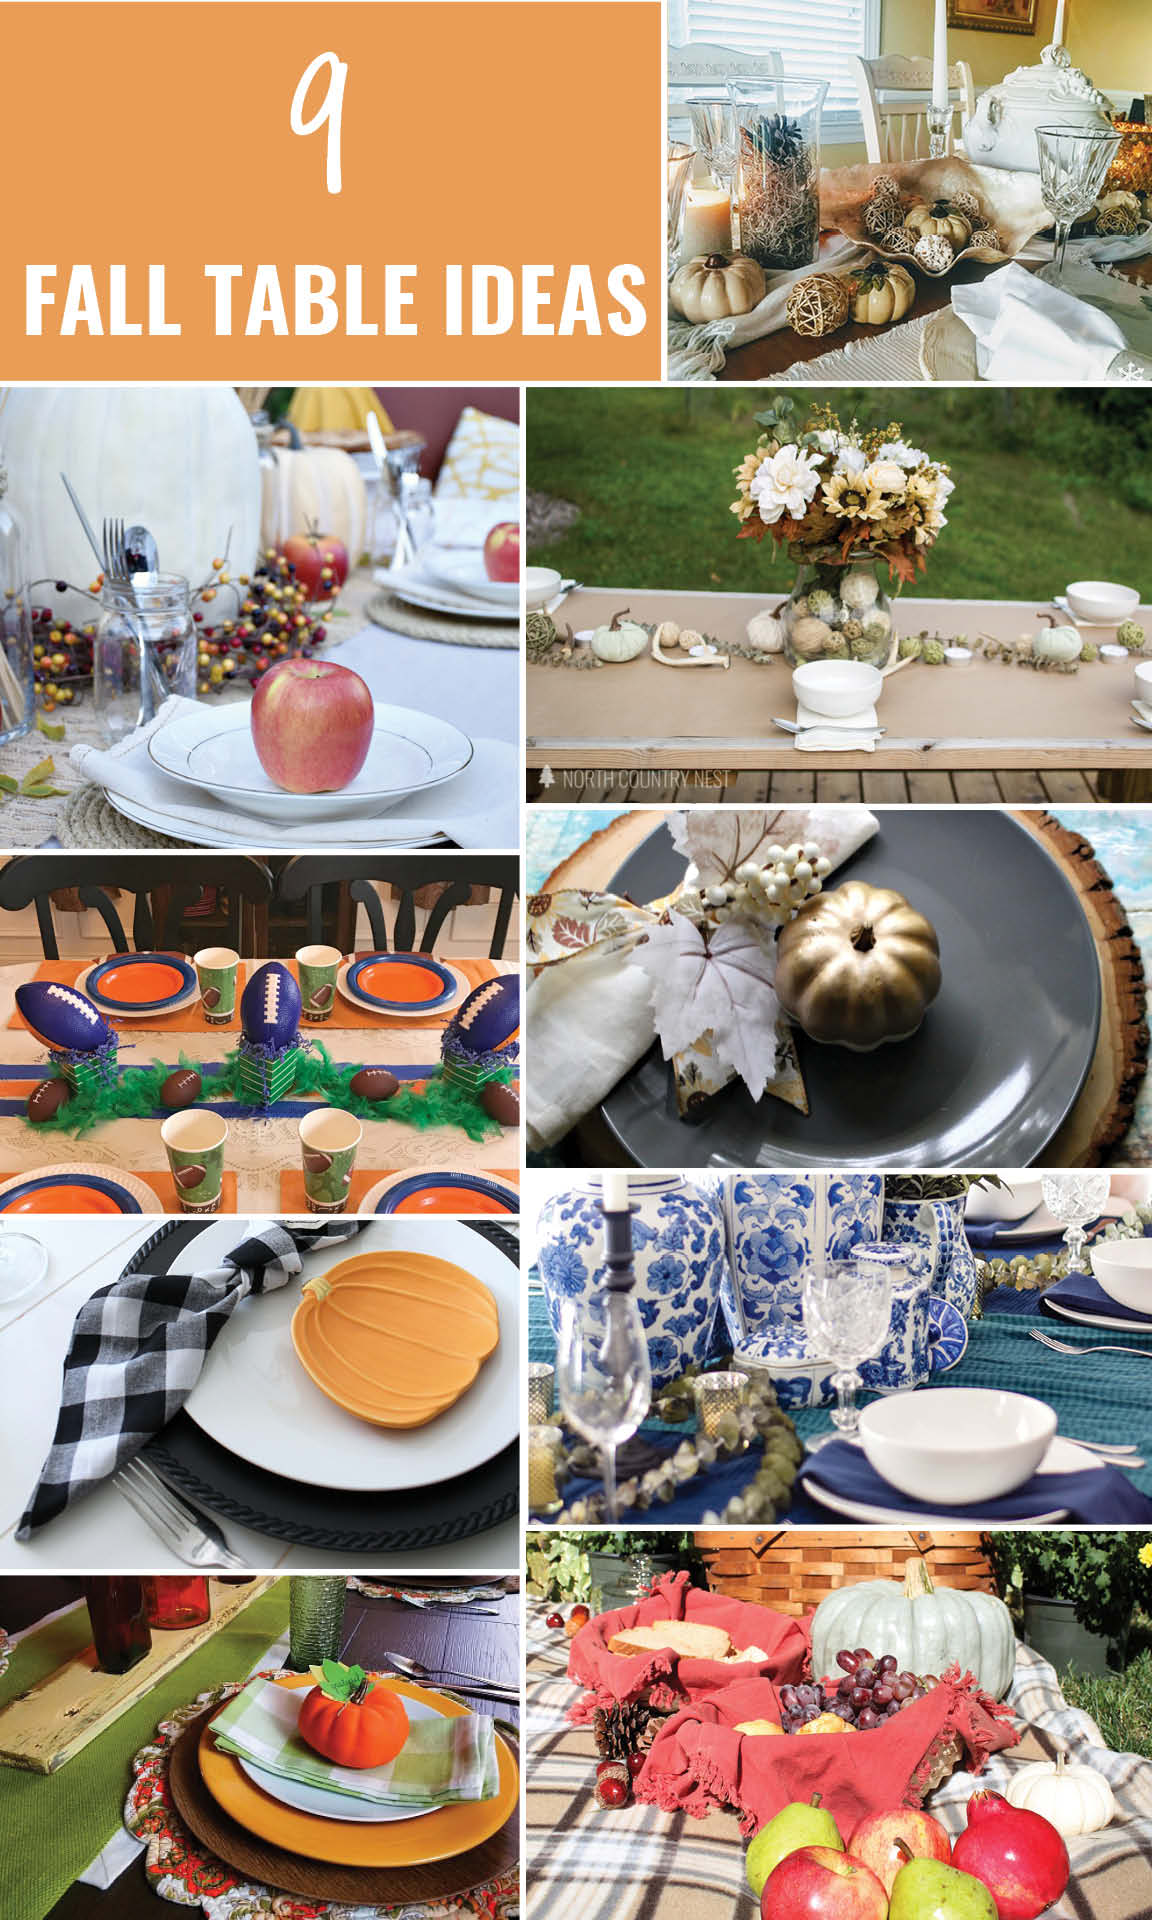 A variety of Fall tablescapes